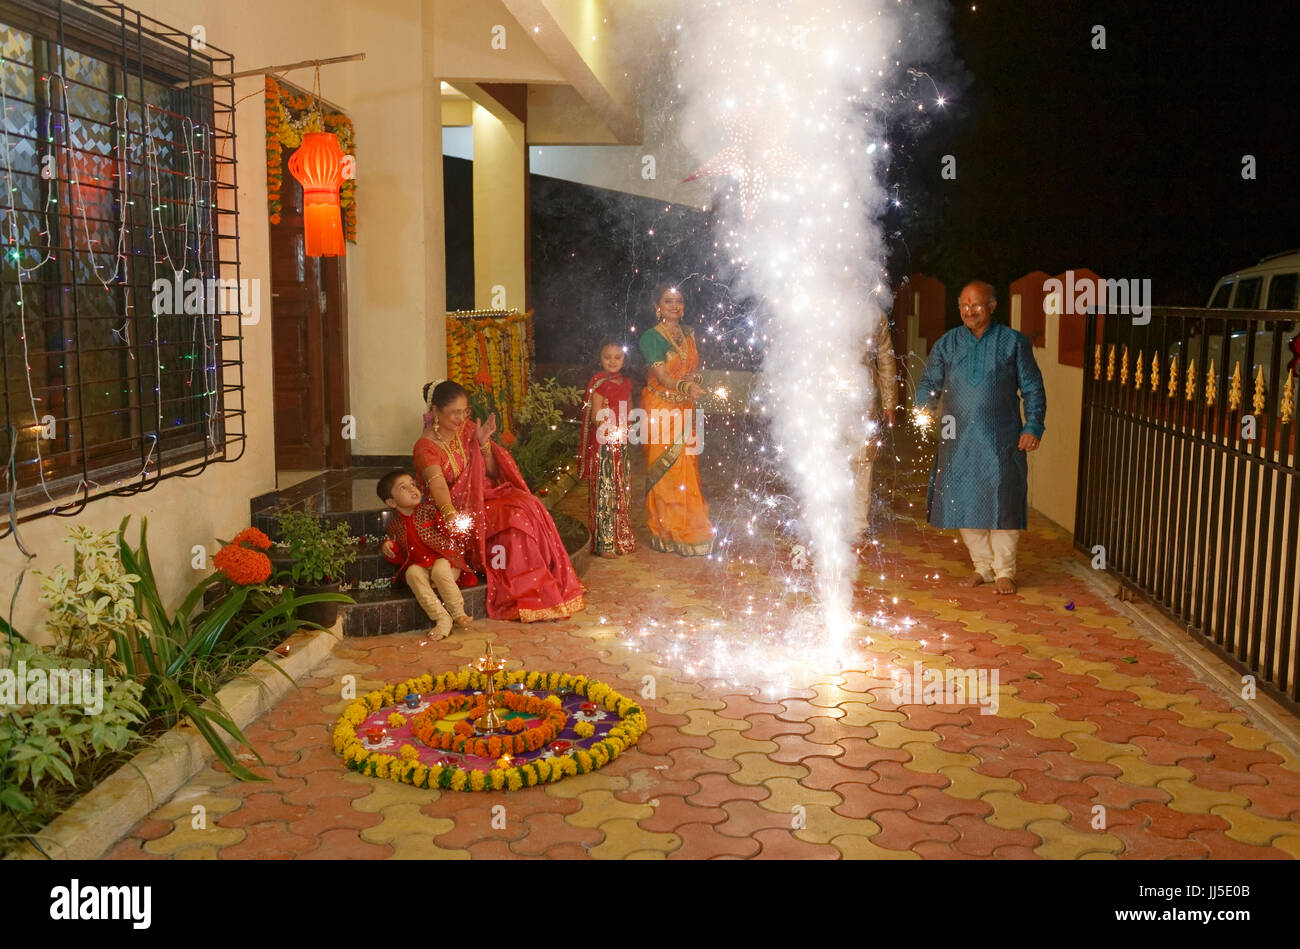 Indian family in traditional outfits celebrating Diwali or deepavali, festival of lights at home. - Stock Image